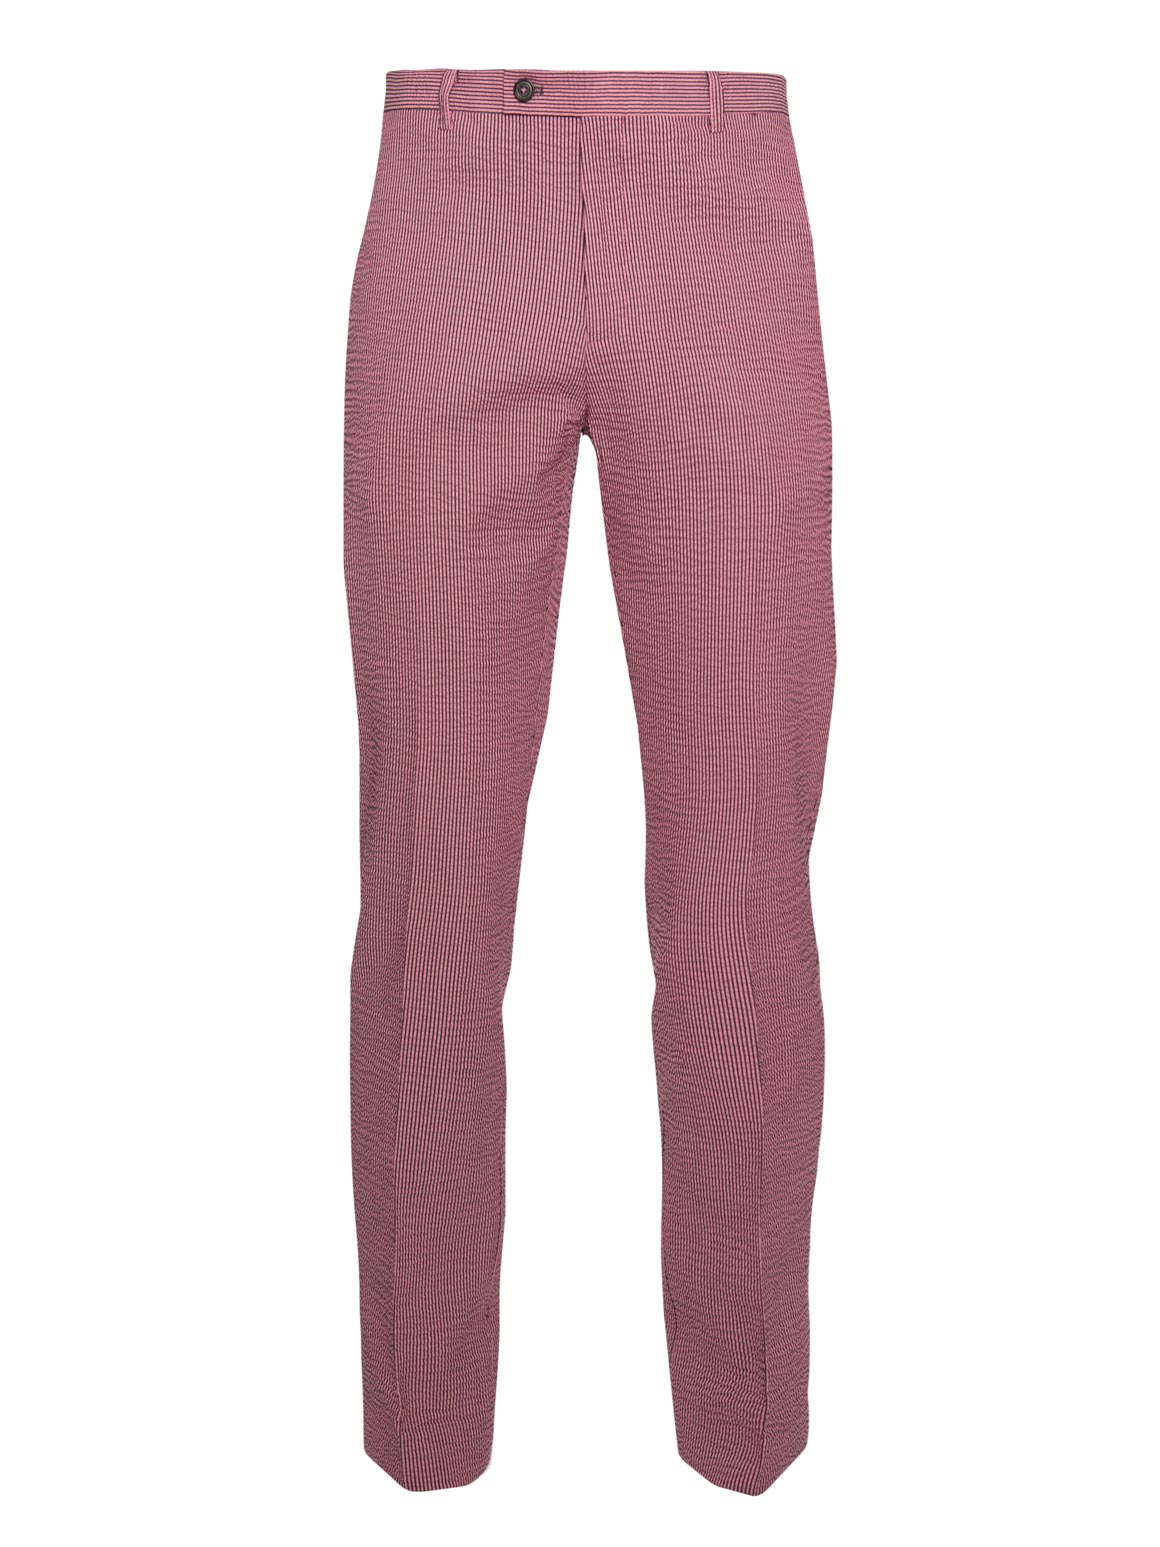 paisley & gray pink seersucker slim fit suit pant 2121P